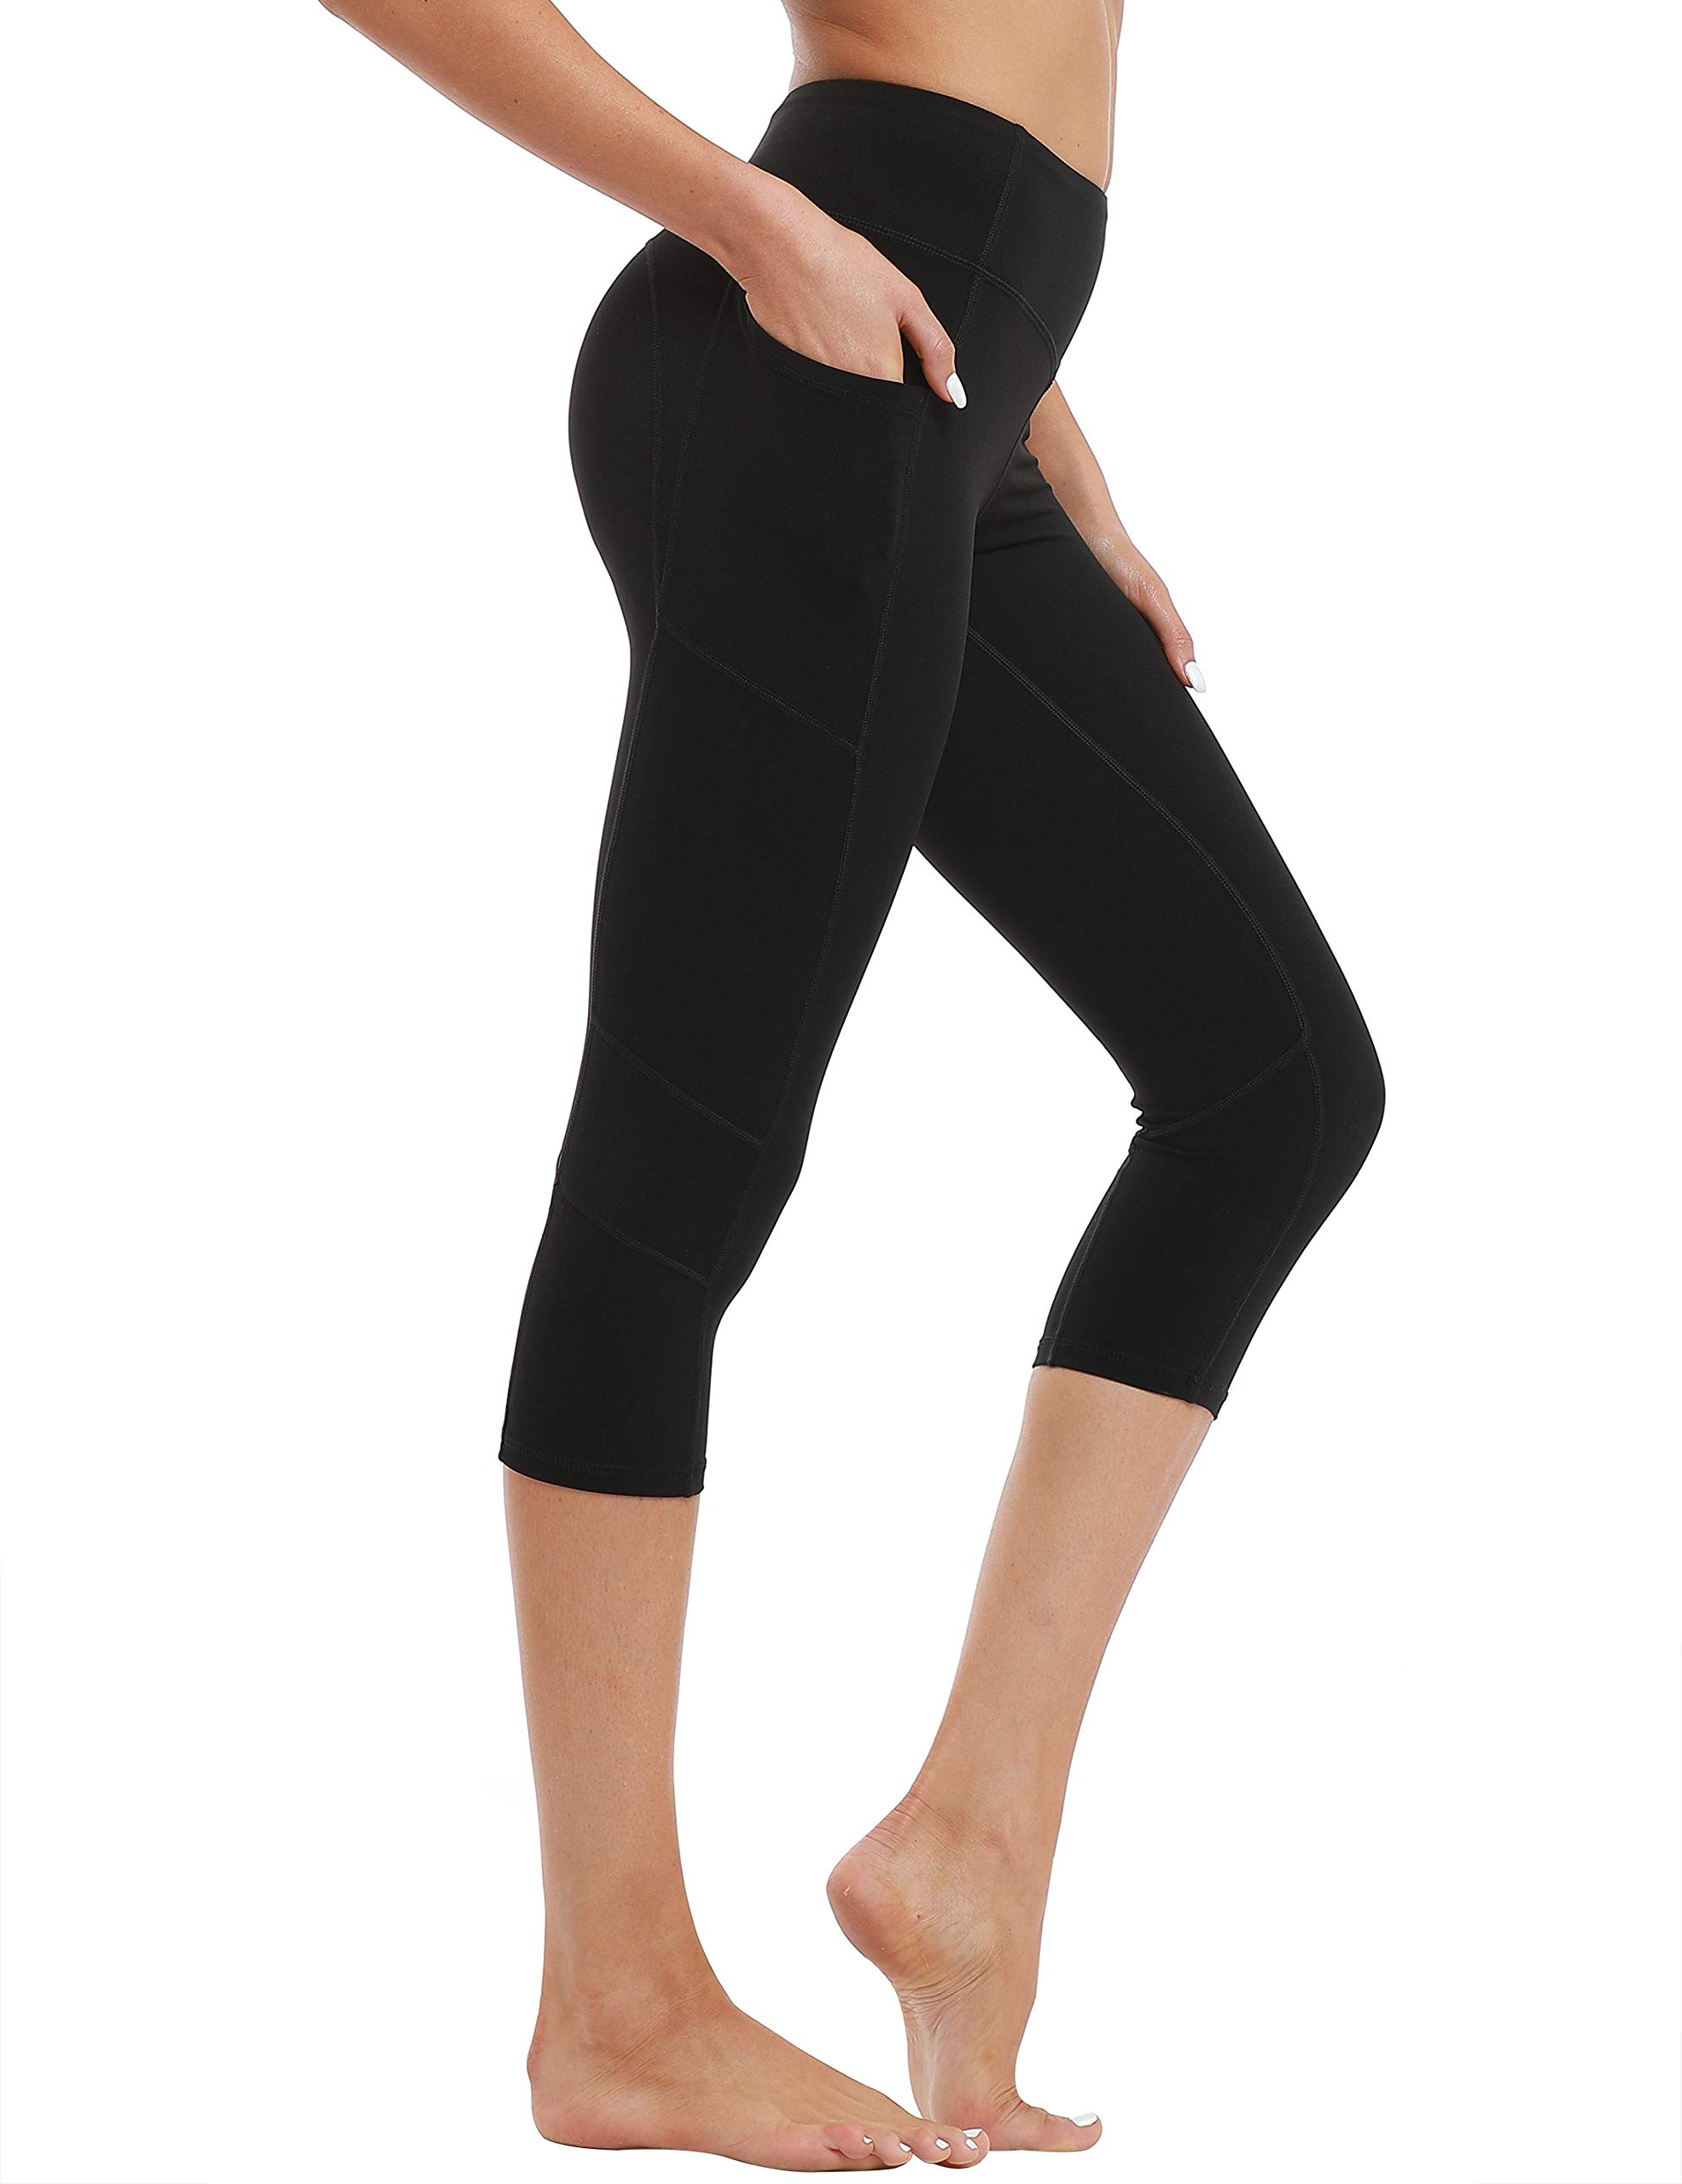 Hopgo Women's 3/4 Workout Legging Crop Yoga Pants Tummy Control Sports Tights Black US S